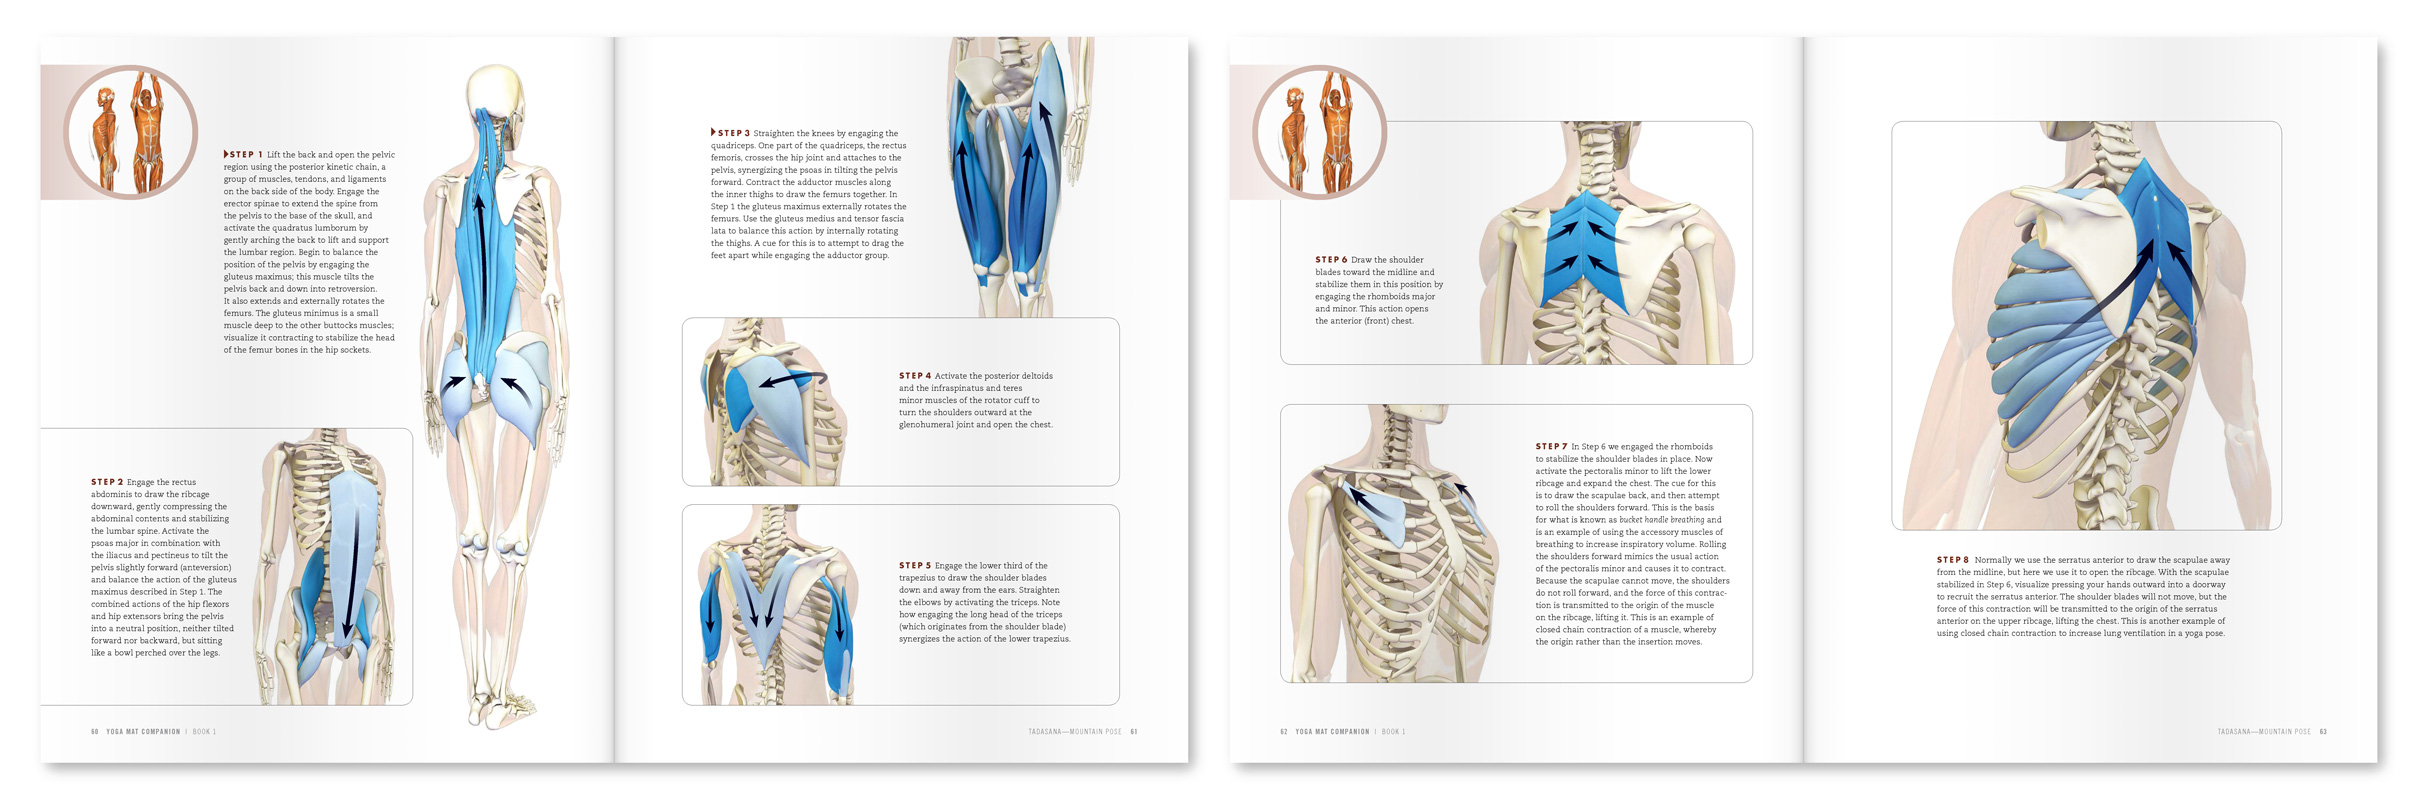 The Daily Bandha Shoulder Kinematics In Yoga Part I